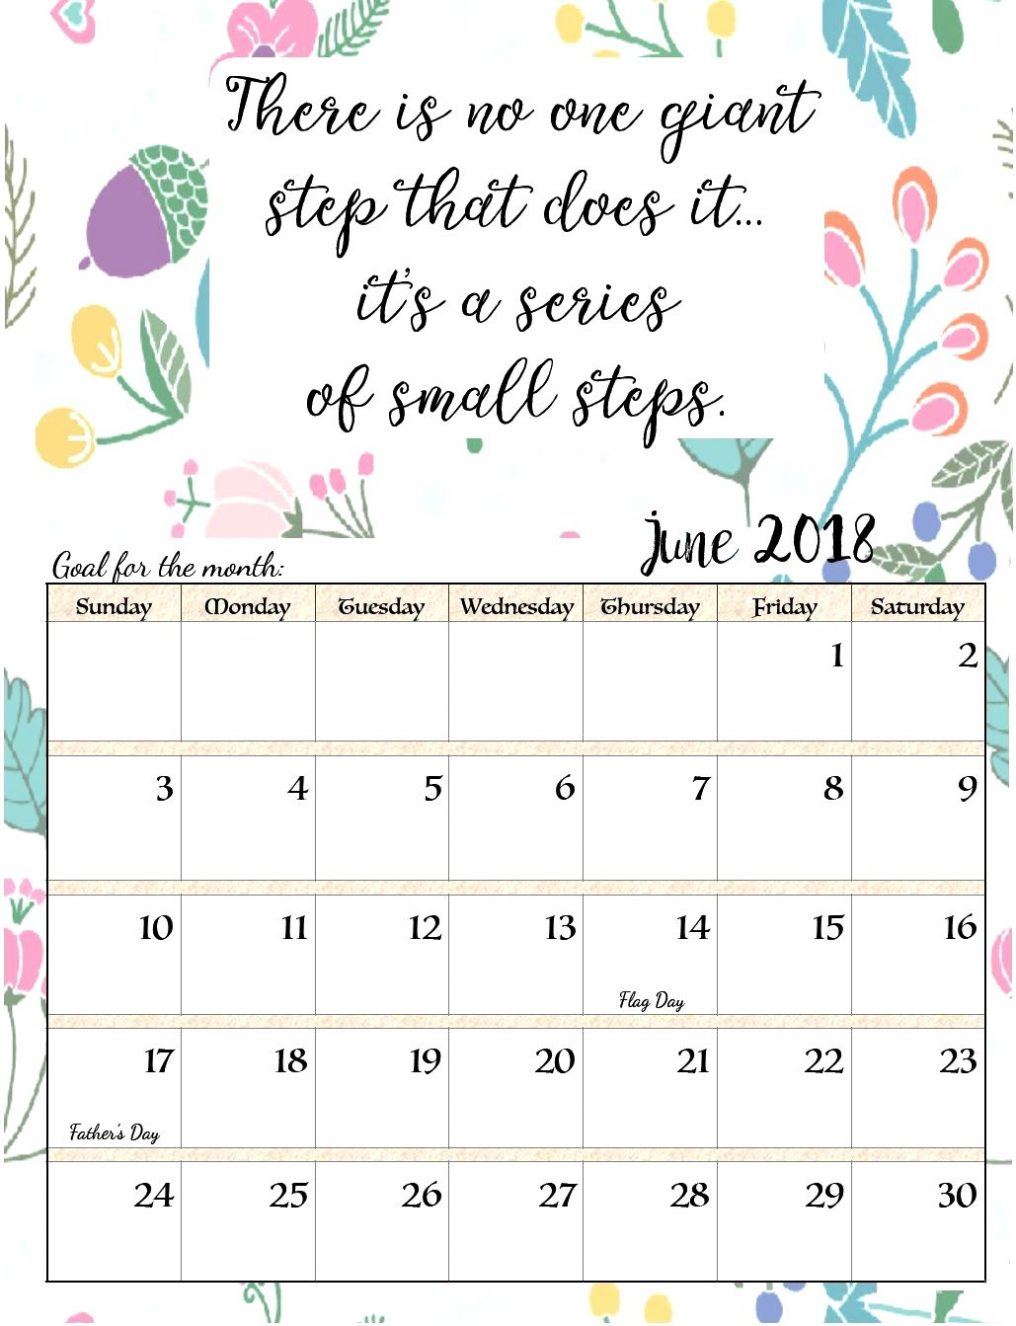 June 2018 Calendar Background For Desktop Laptop Mobile 1016x1326